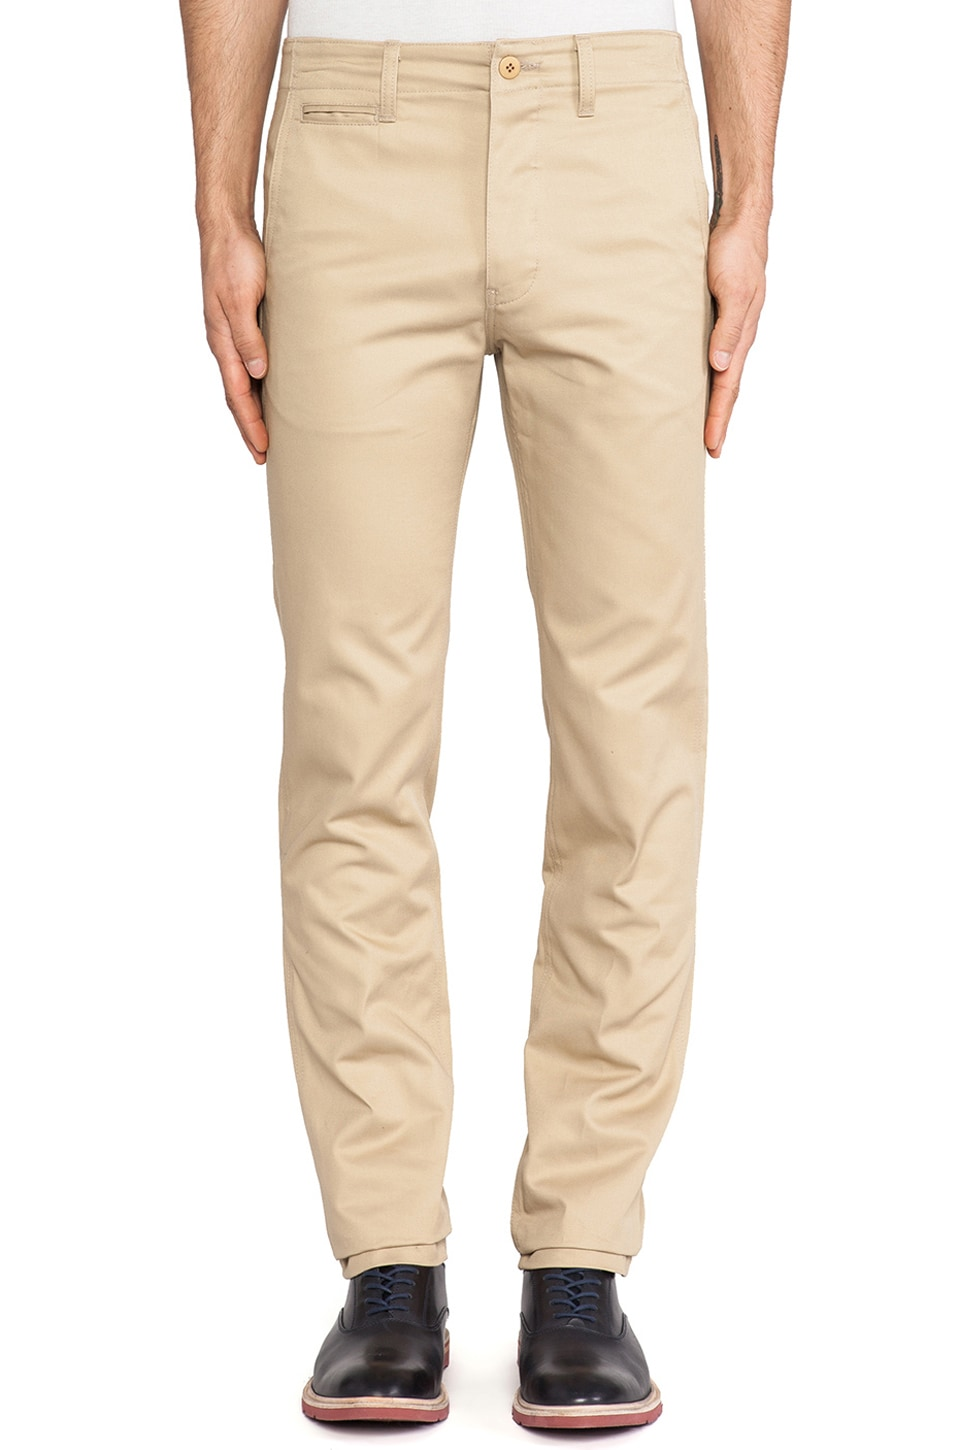 United Stock Dry Goods Twill Chino in Khaki